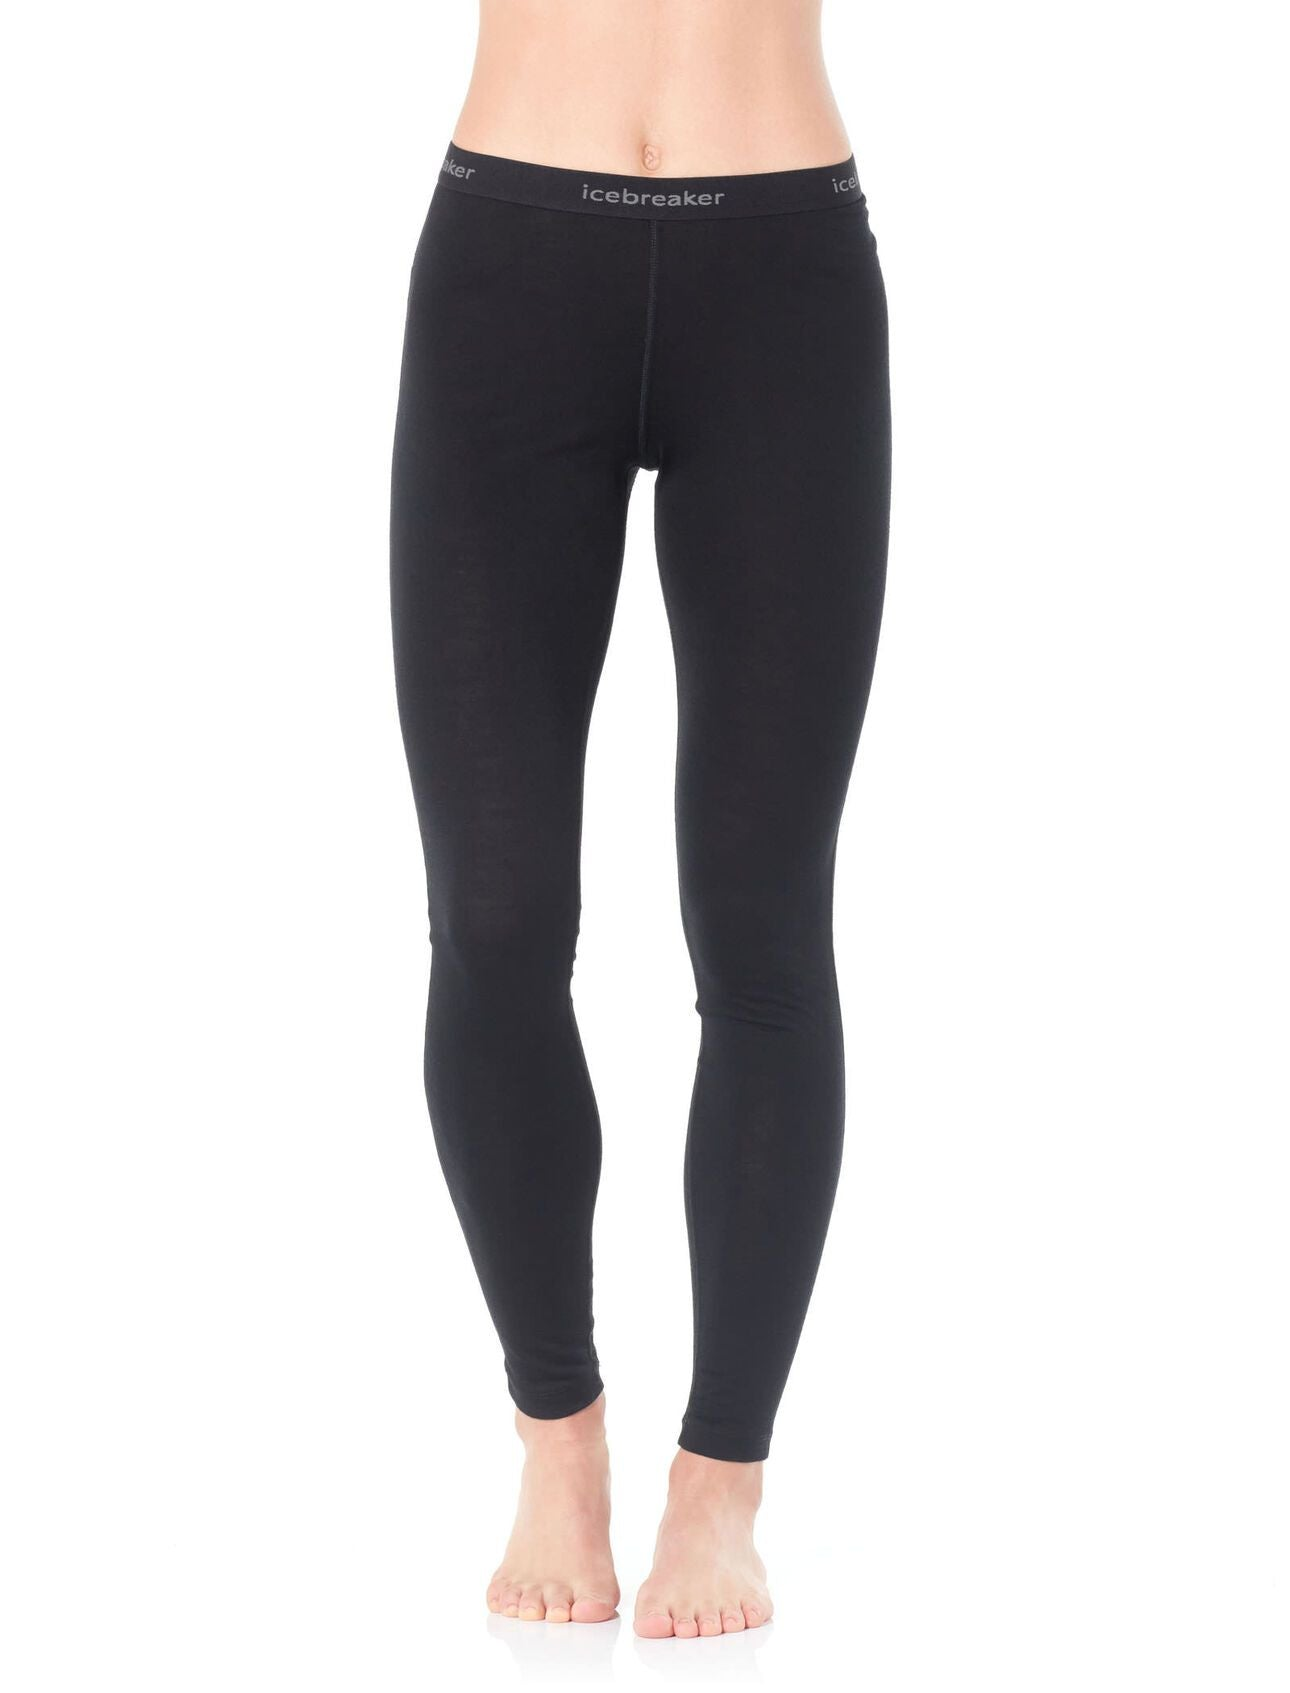 Damen Merino 200 Oasis Leggings